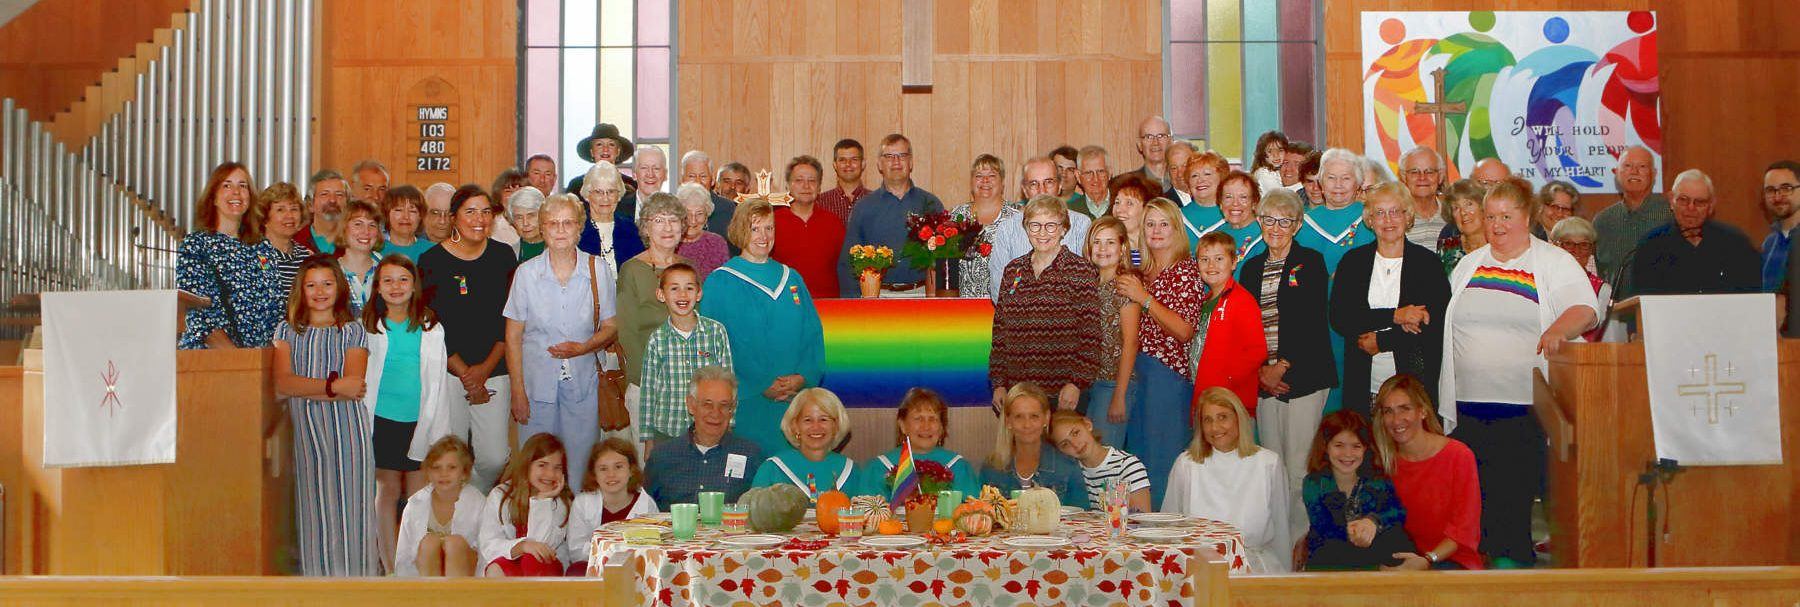 Photo of some of the Congregation gathered around thee communion table in fall 2019. Lansing United Methodist Church became a Reconciling Congregation on September 22, 2019.